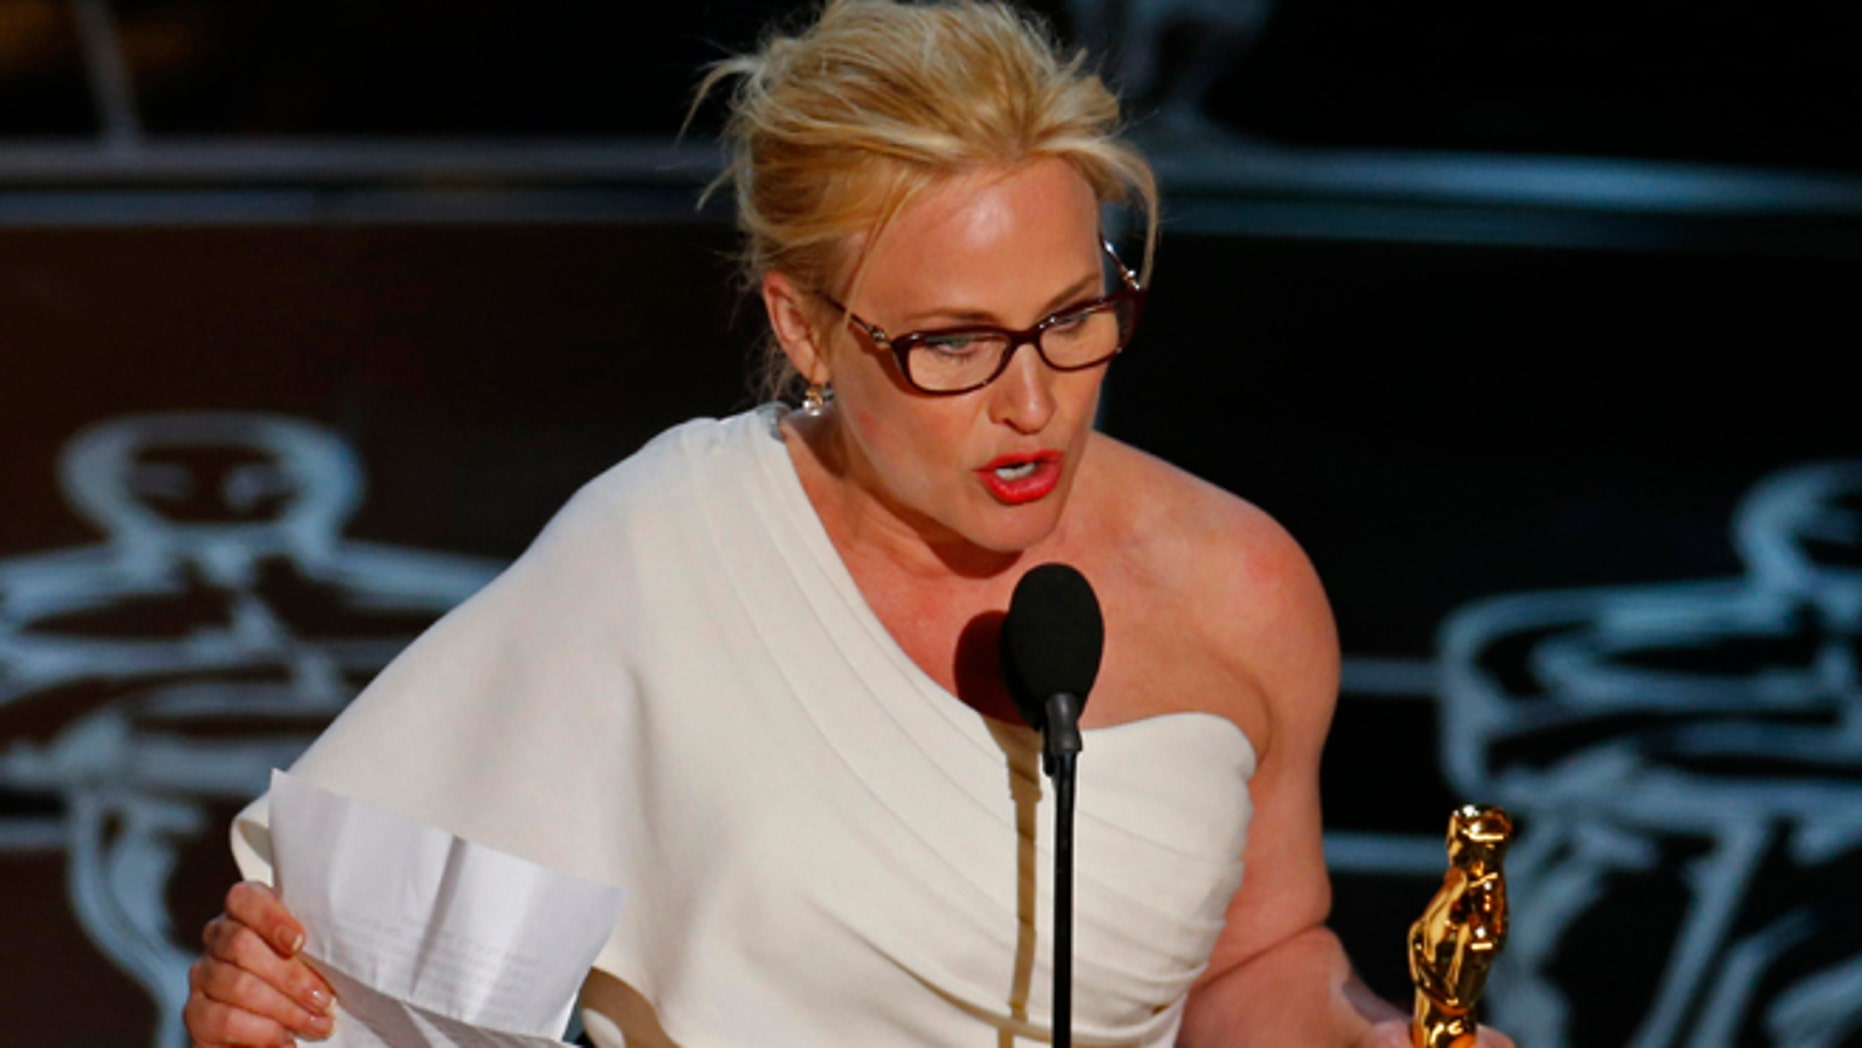 "Patricia Arquette speaks after winning the Oscar for Best Supporting Actress for her role in ""Boyhood"" at the 87th Academy Awards in Hollywood, California February 22, 2015.  REUTERS/Mike Blake (UNITED STATES TAGS:ENTERTAINMENT) (OSCARS-SHOW) - RTR4QOOK"